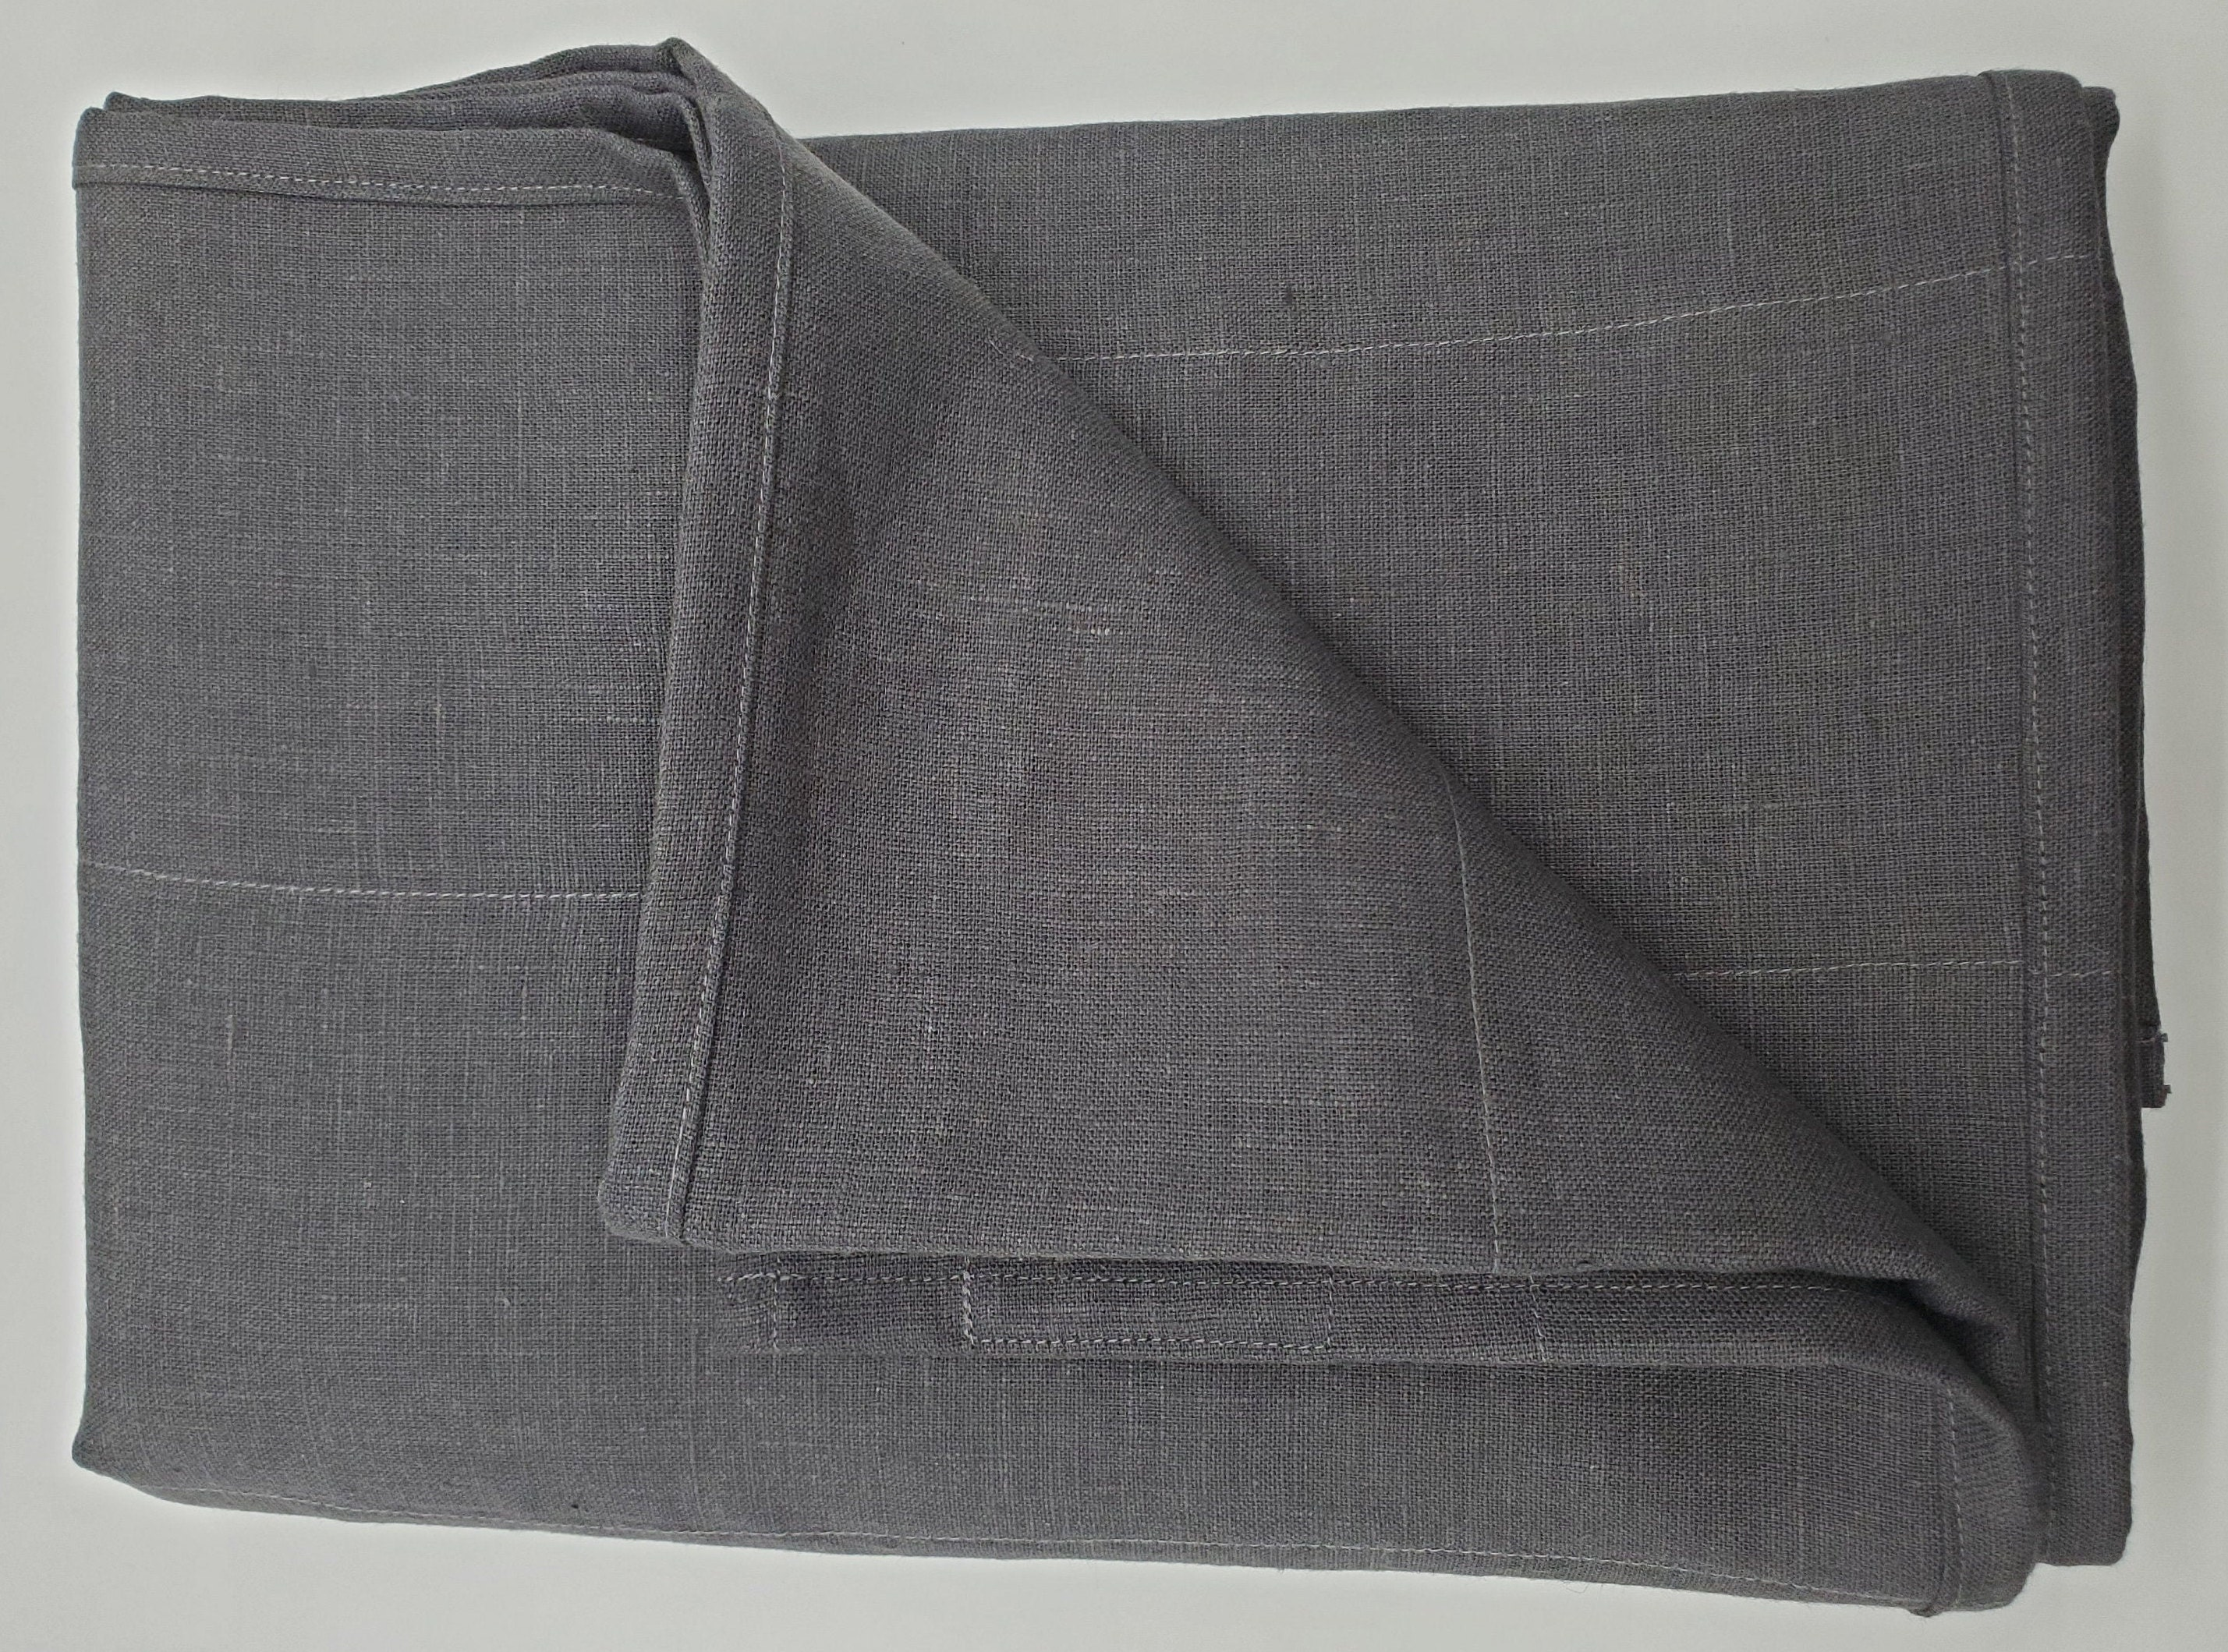 Linen weighted blanket pepper color / Therapy blanket linen / Weighted blankets / Heavy throw / Glass fill / Breathable / Pepper linen color